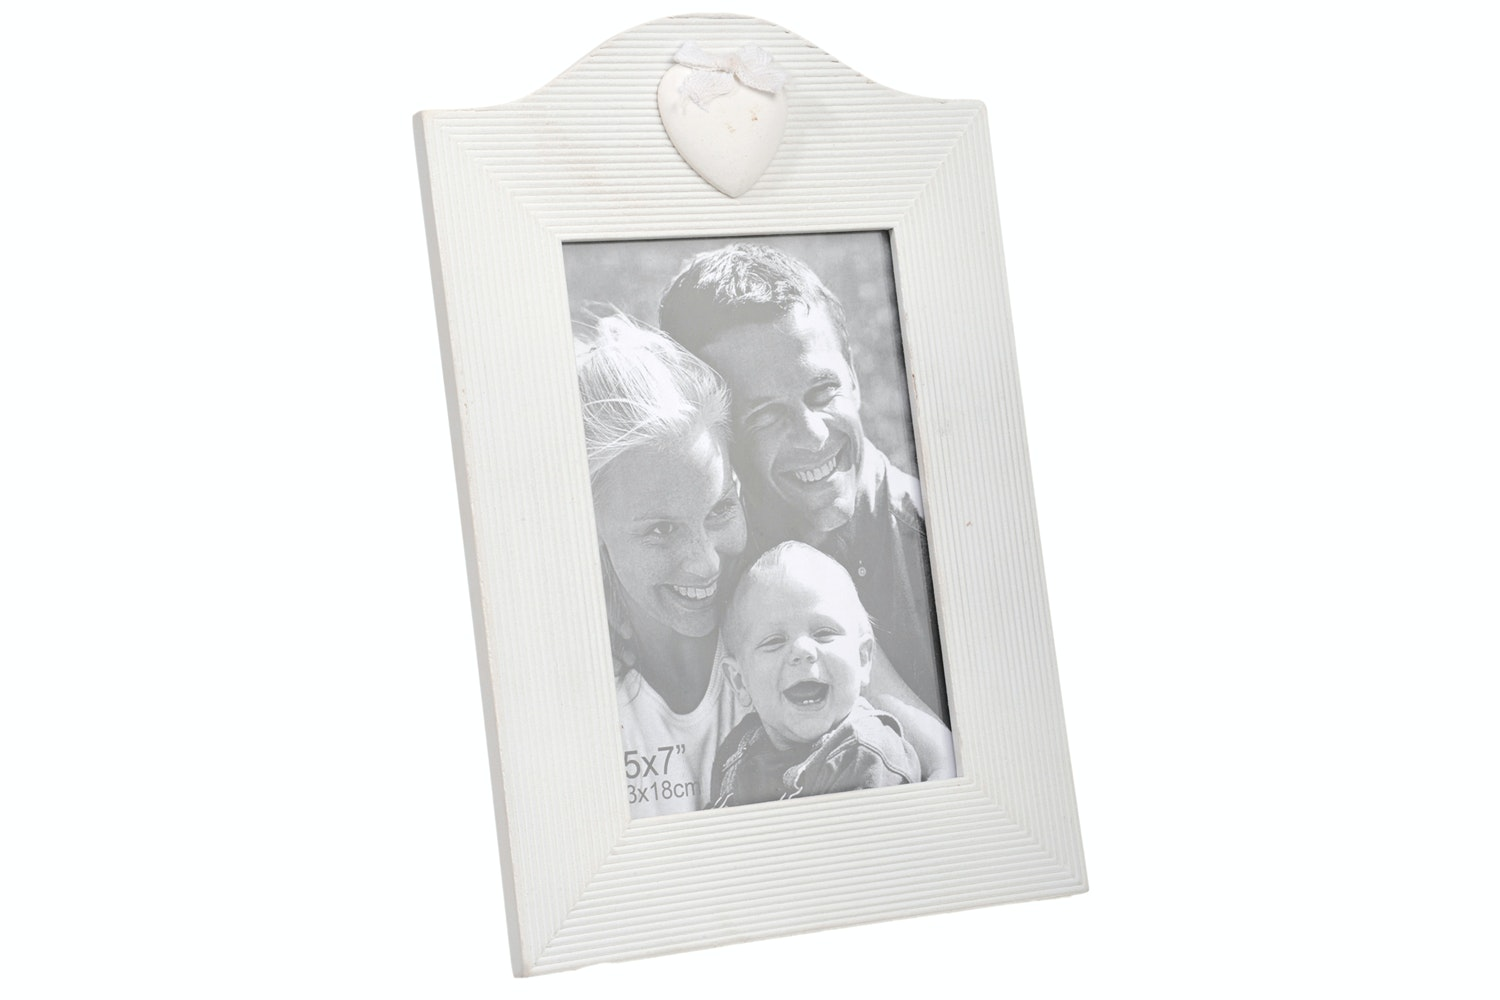 White Heart Photo Frame 5x7